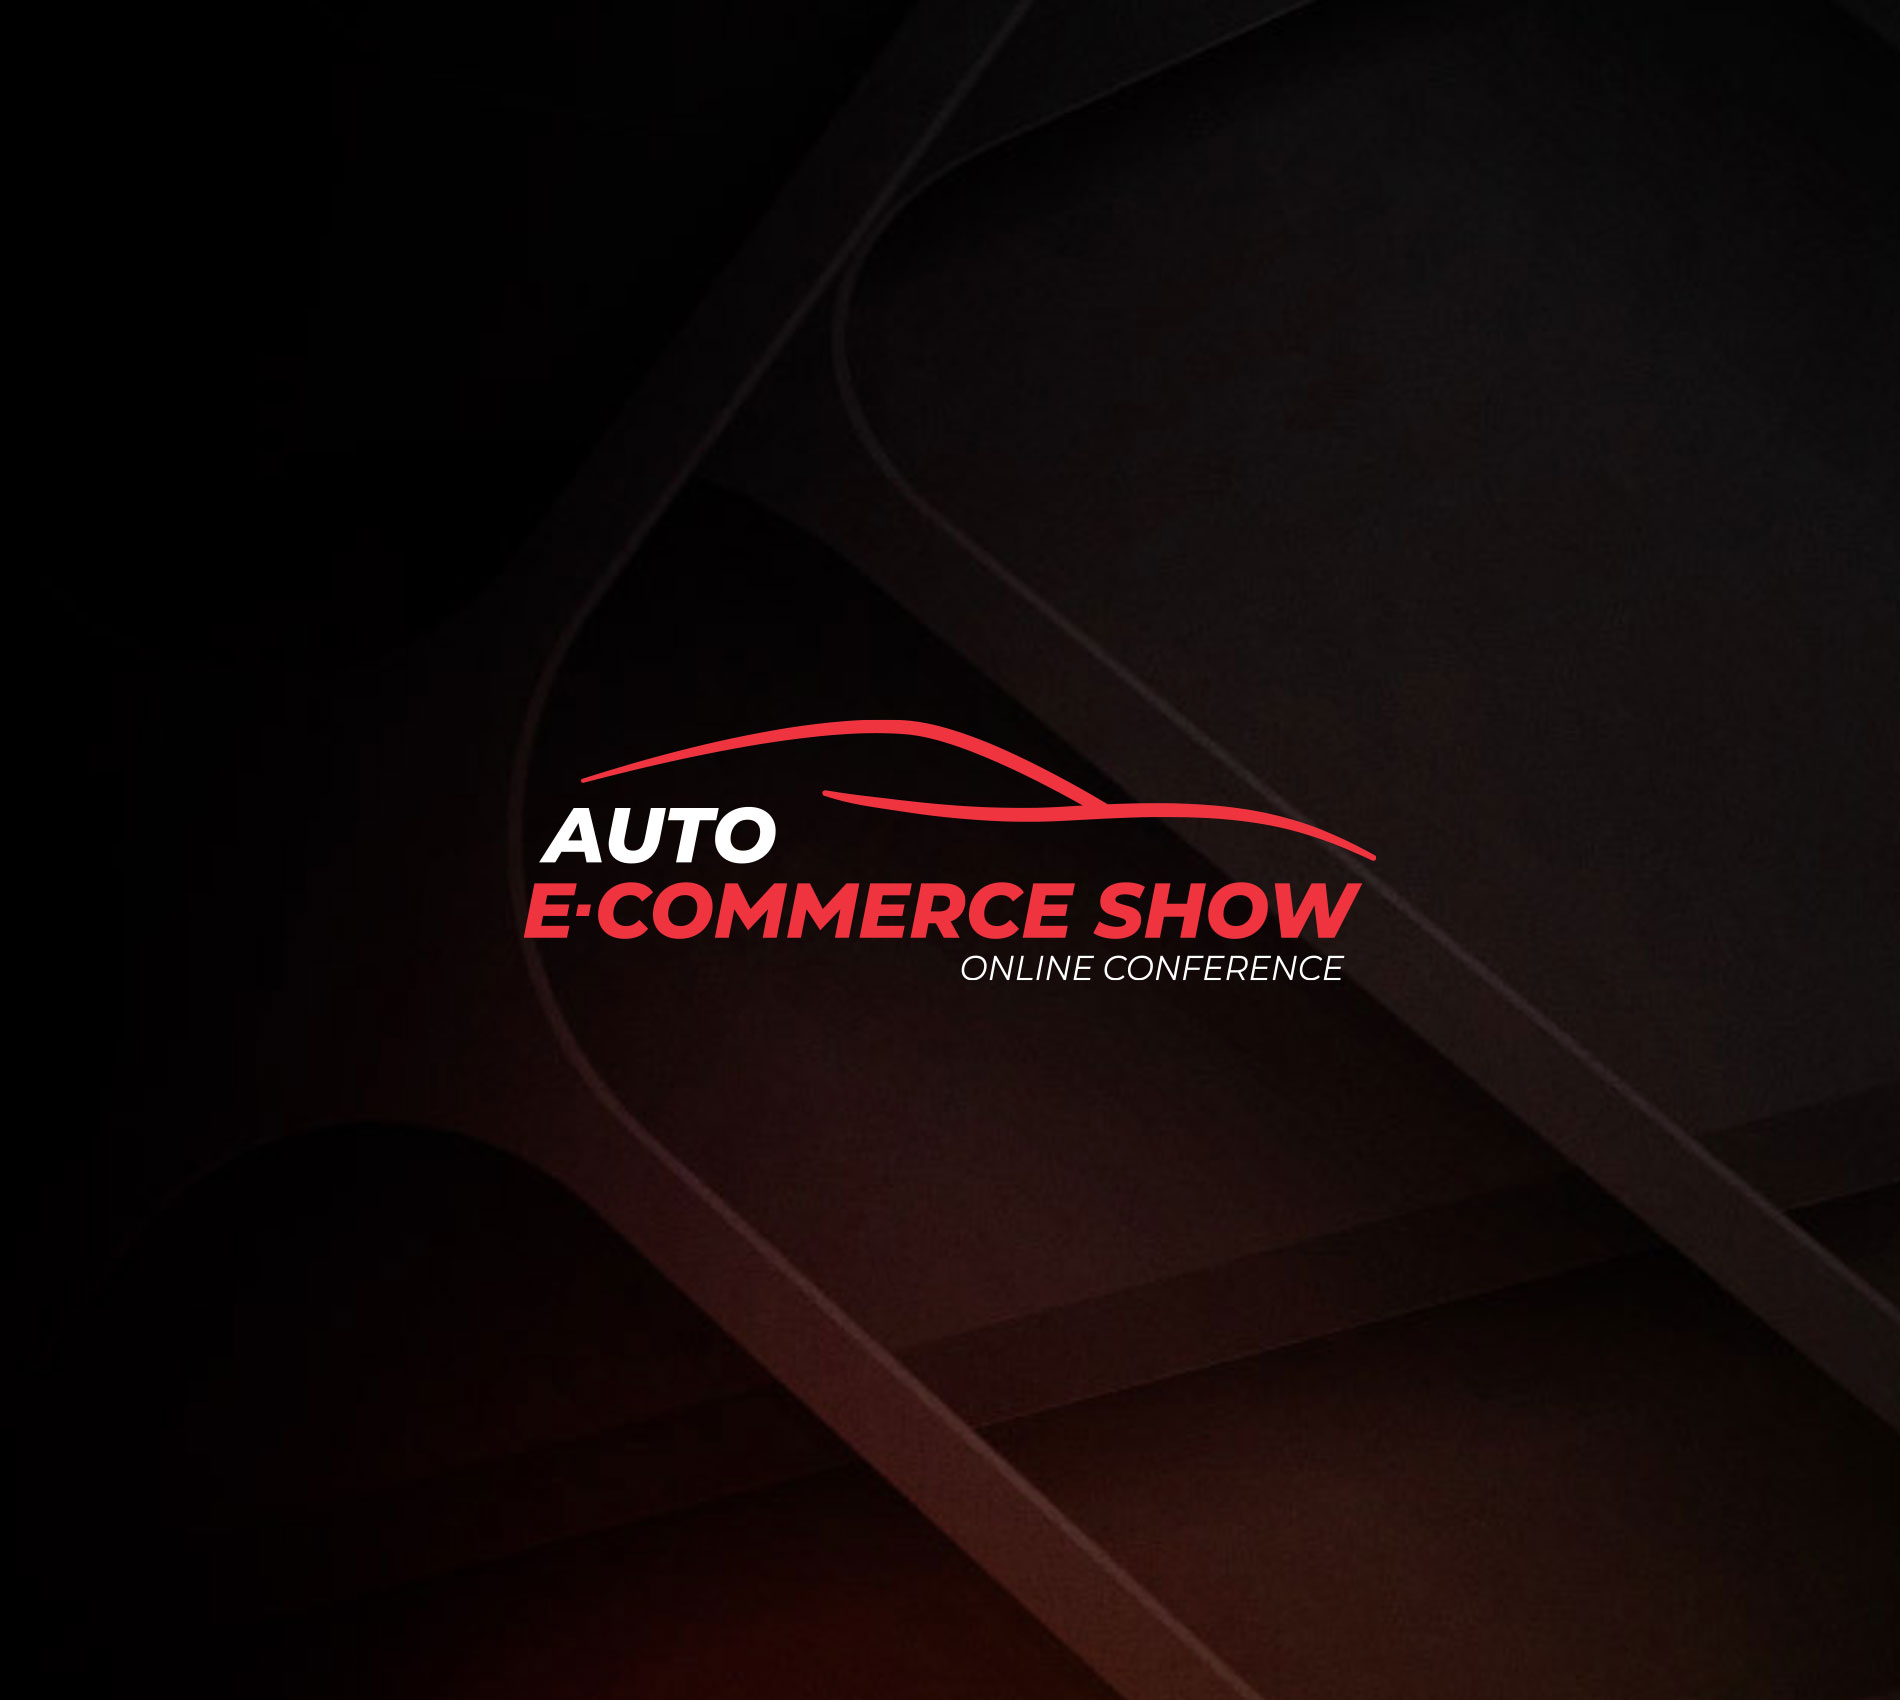 Auto E-commerce Show | Online Conference 2021